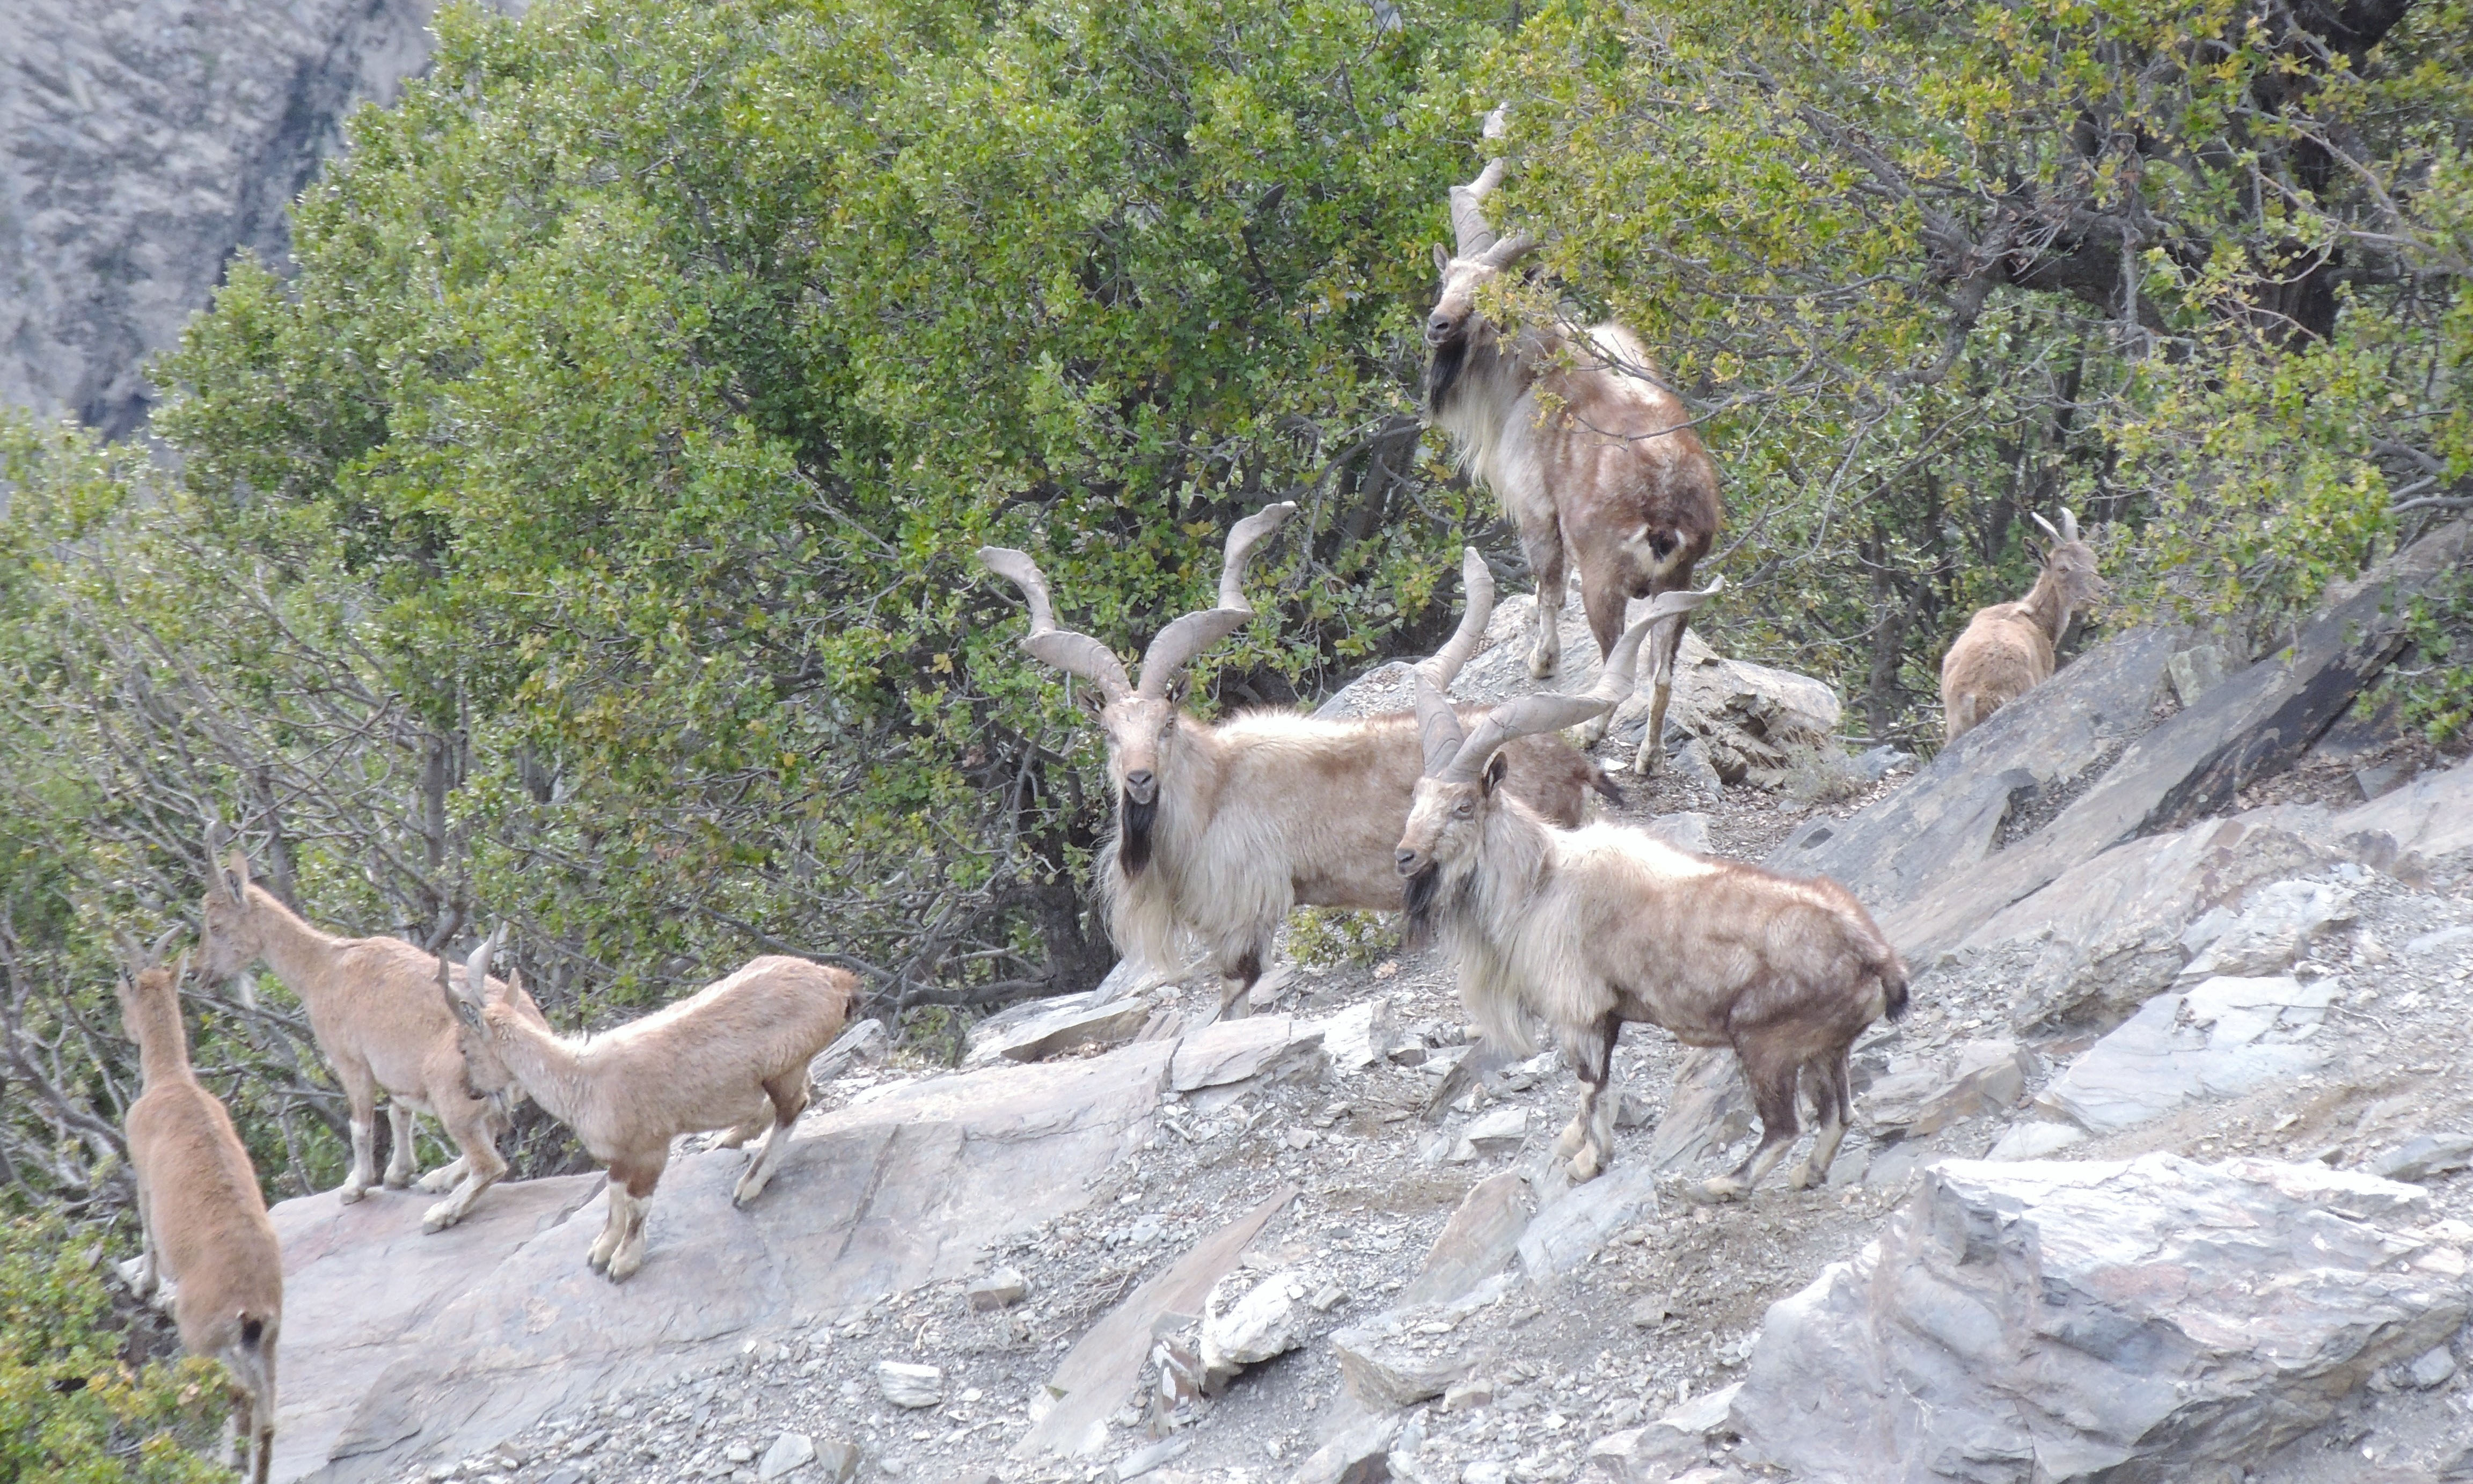 Markhor family in Chitral Gol National Park